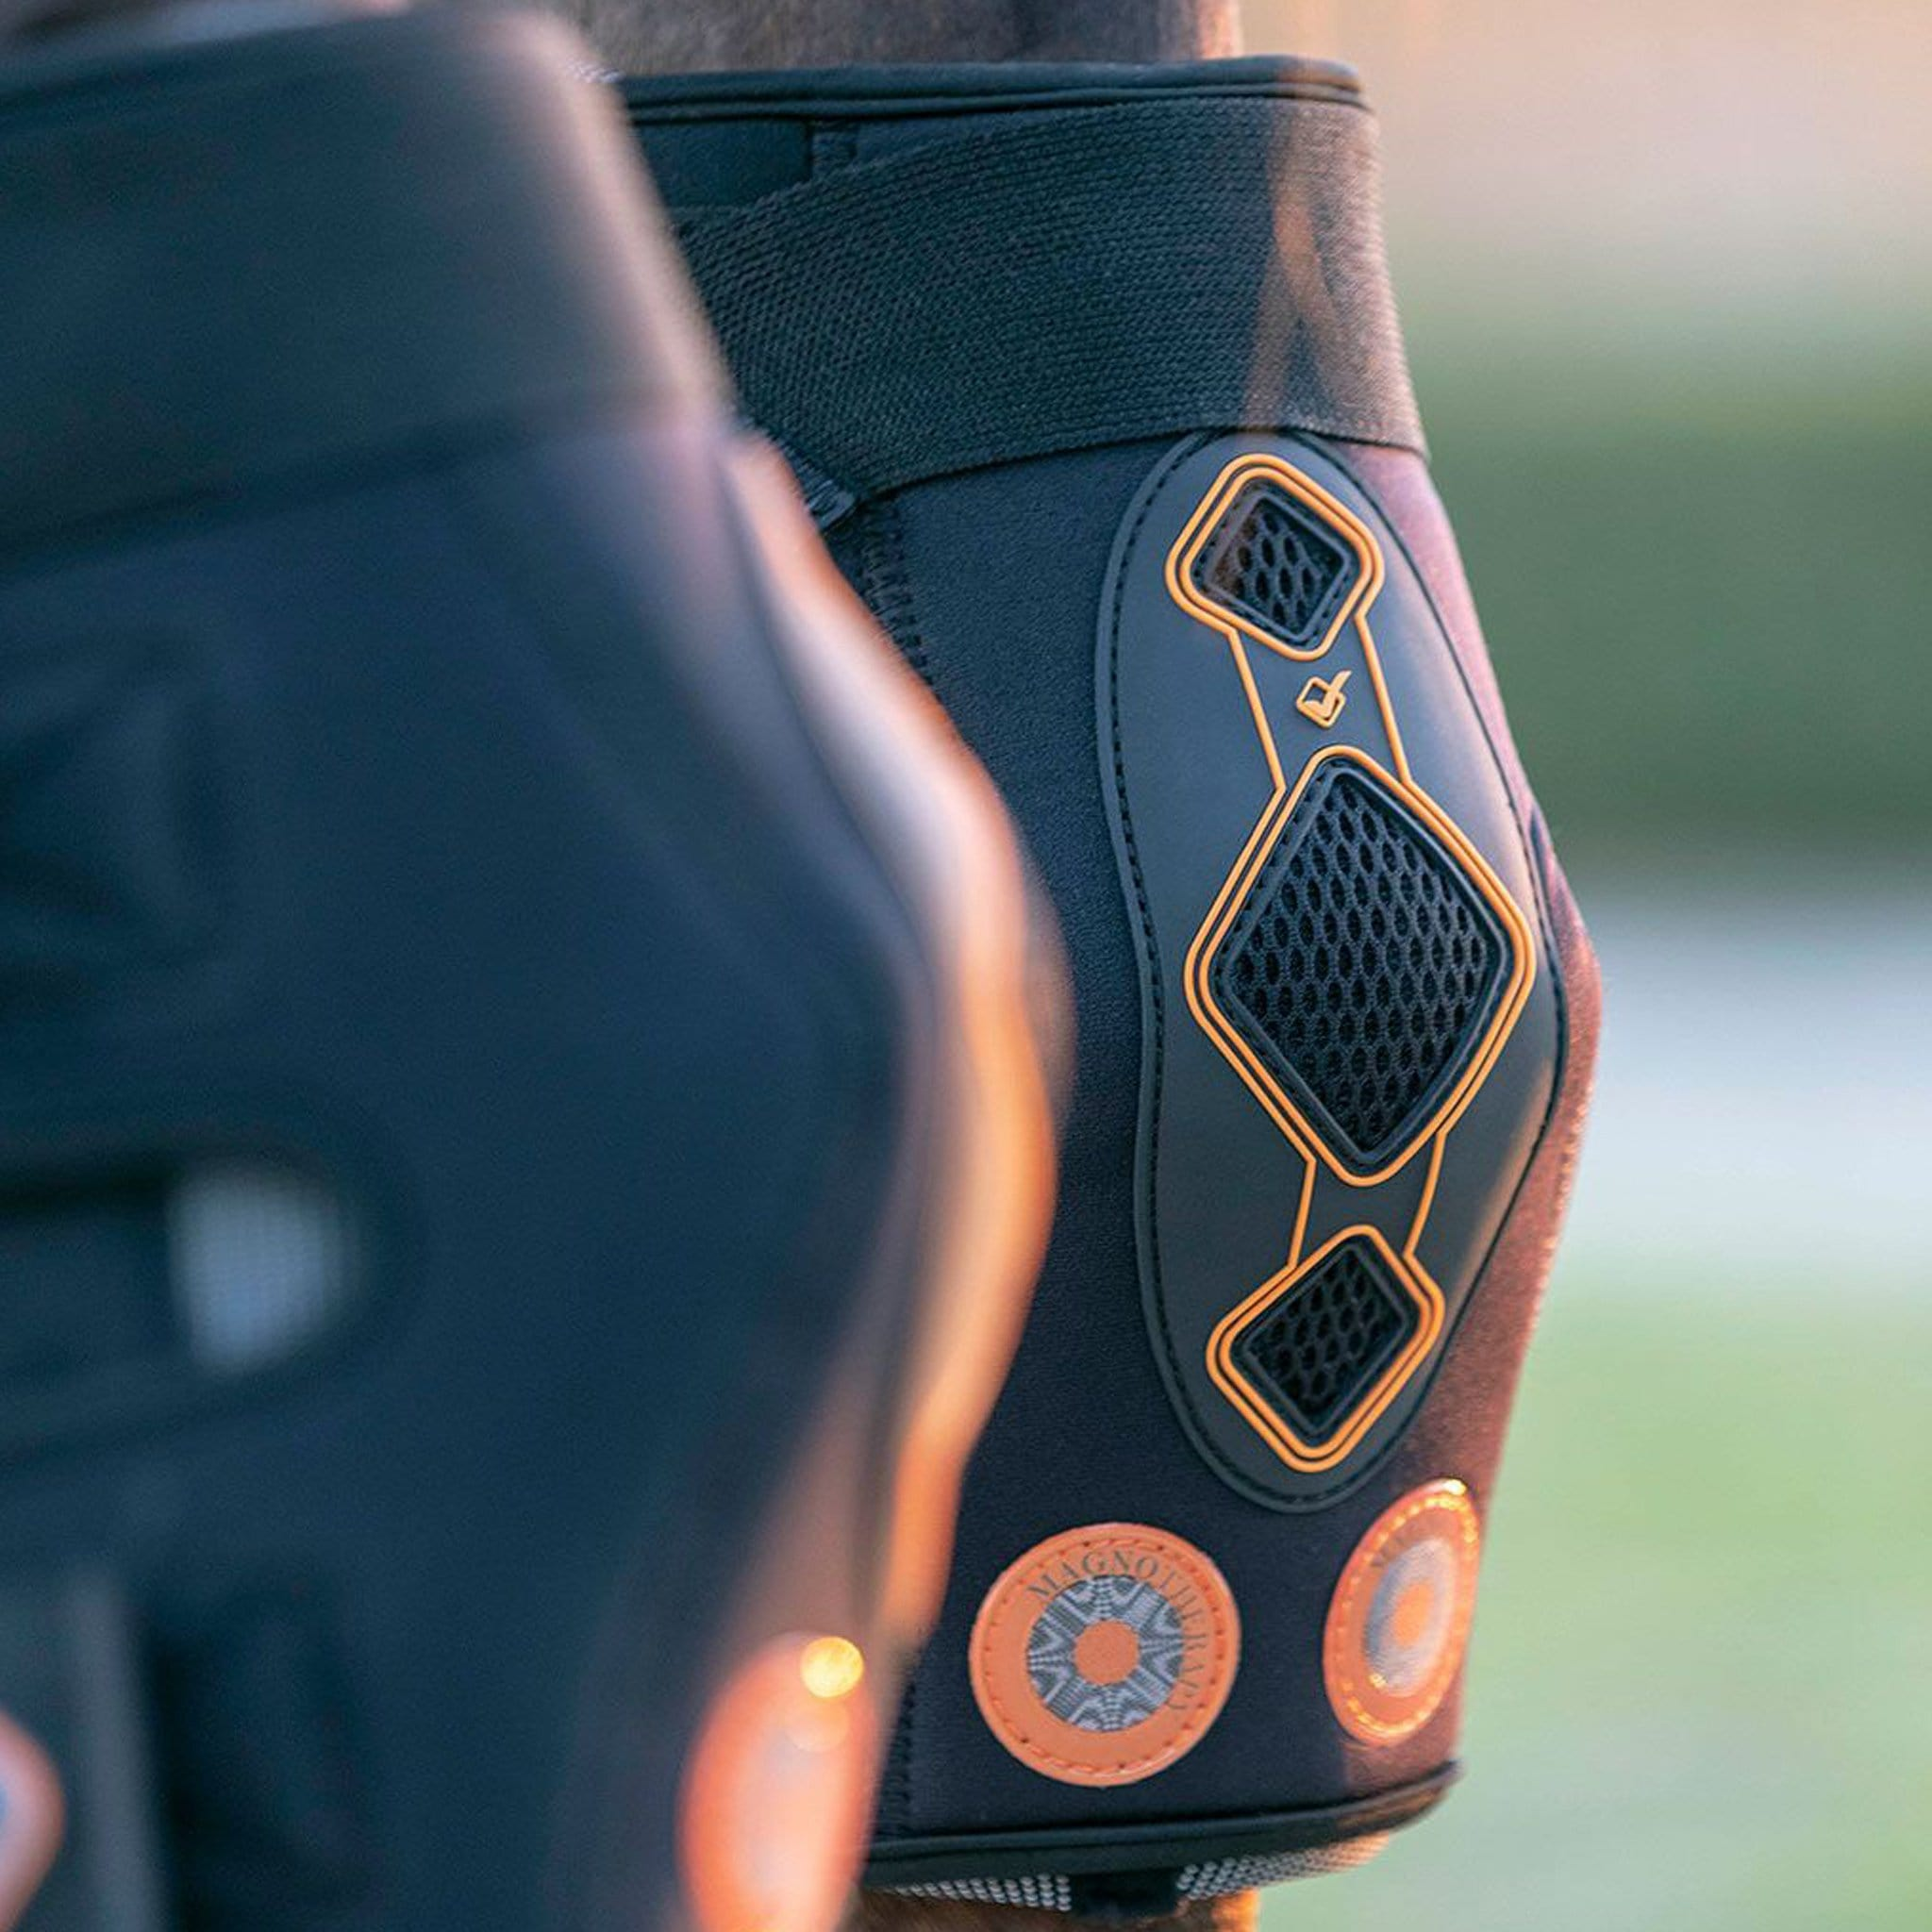 LeMieux Conductive Magnotherapy Hock Boots 6916 Close Up On Horse